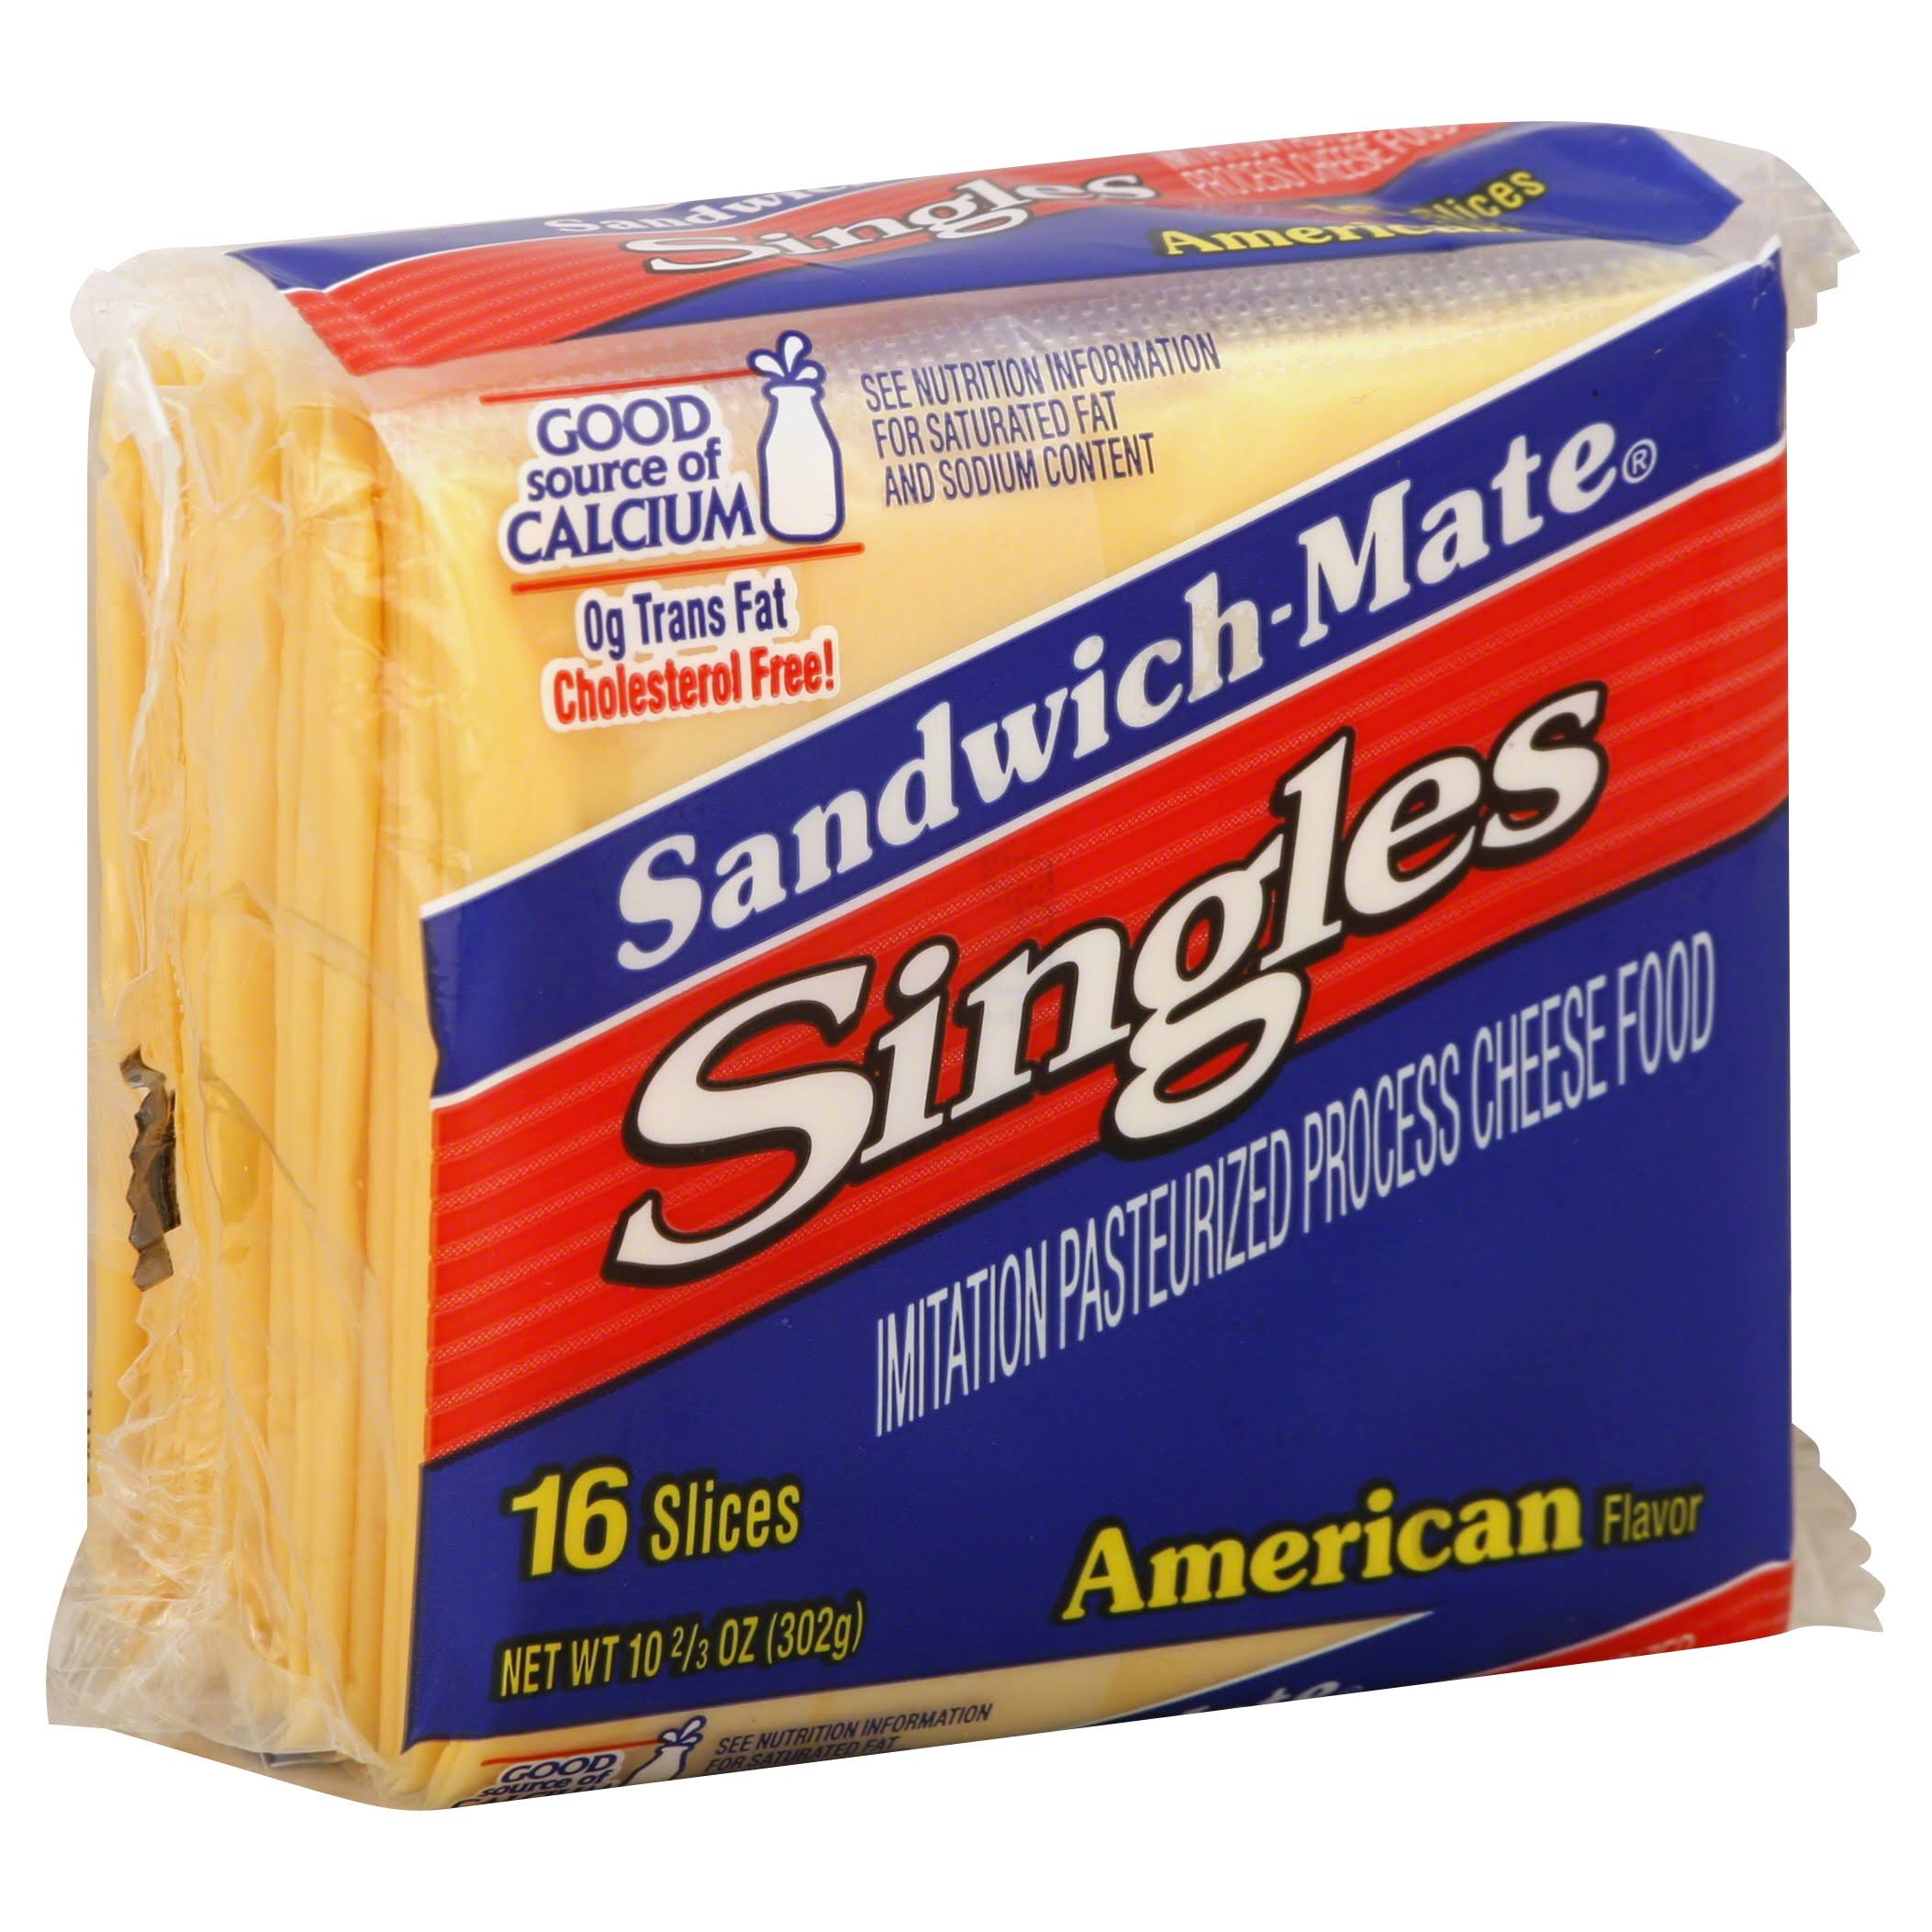 Sandwich-Mate Singles Cheese - American Flavor, 16 Slices, 302g